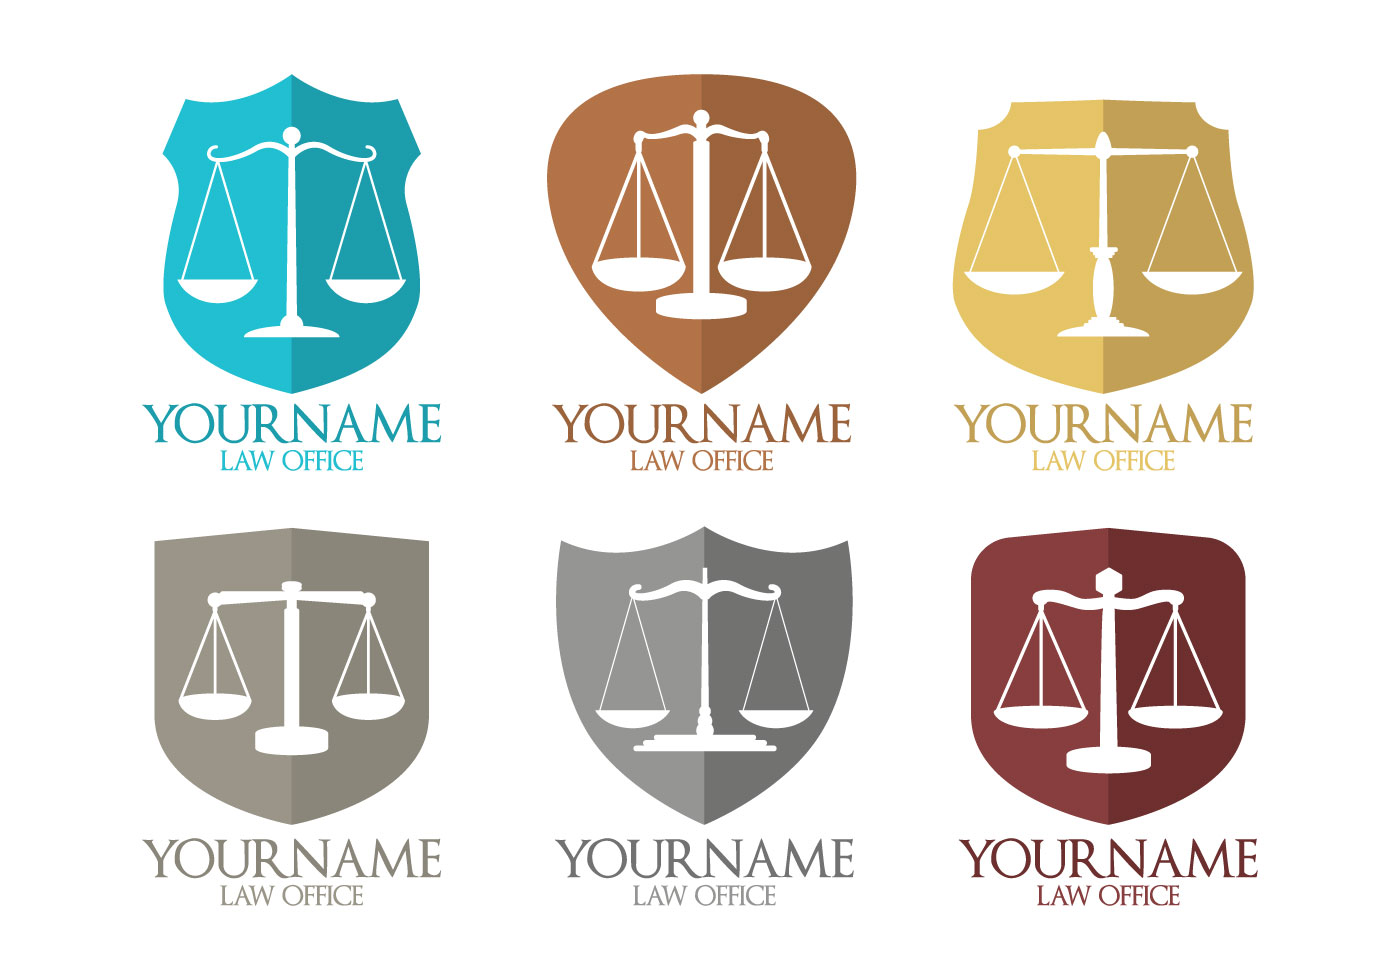 law-office-logo-vectors.jpg